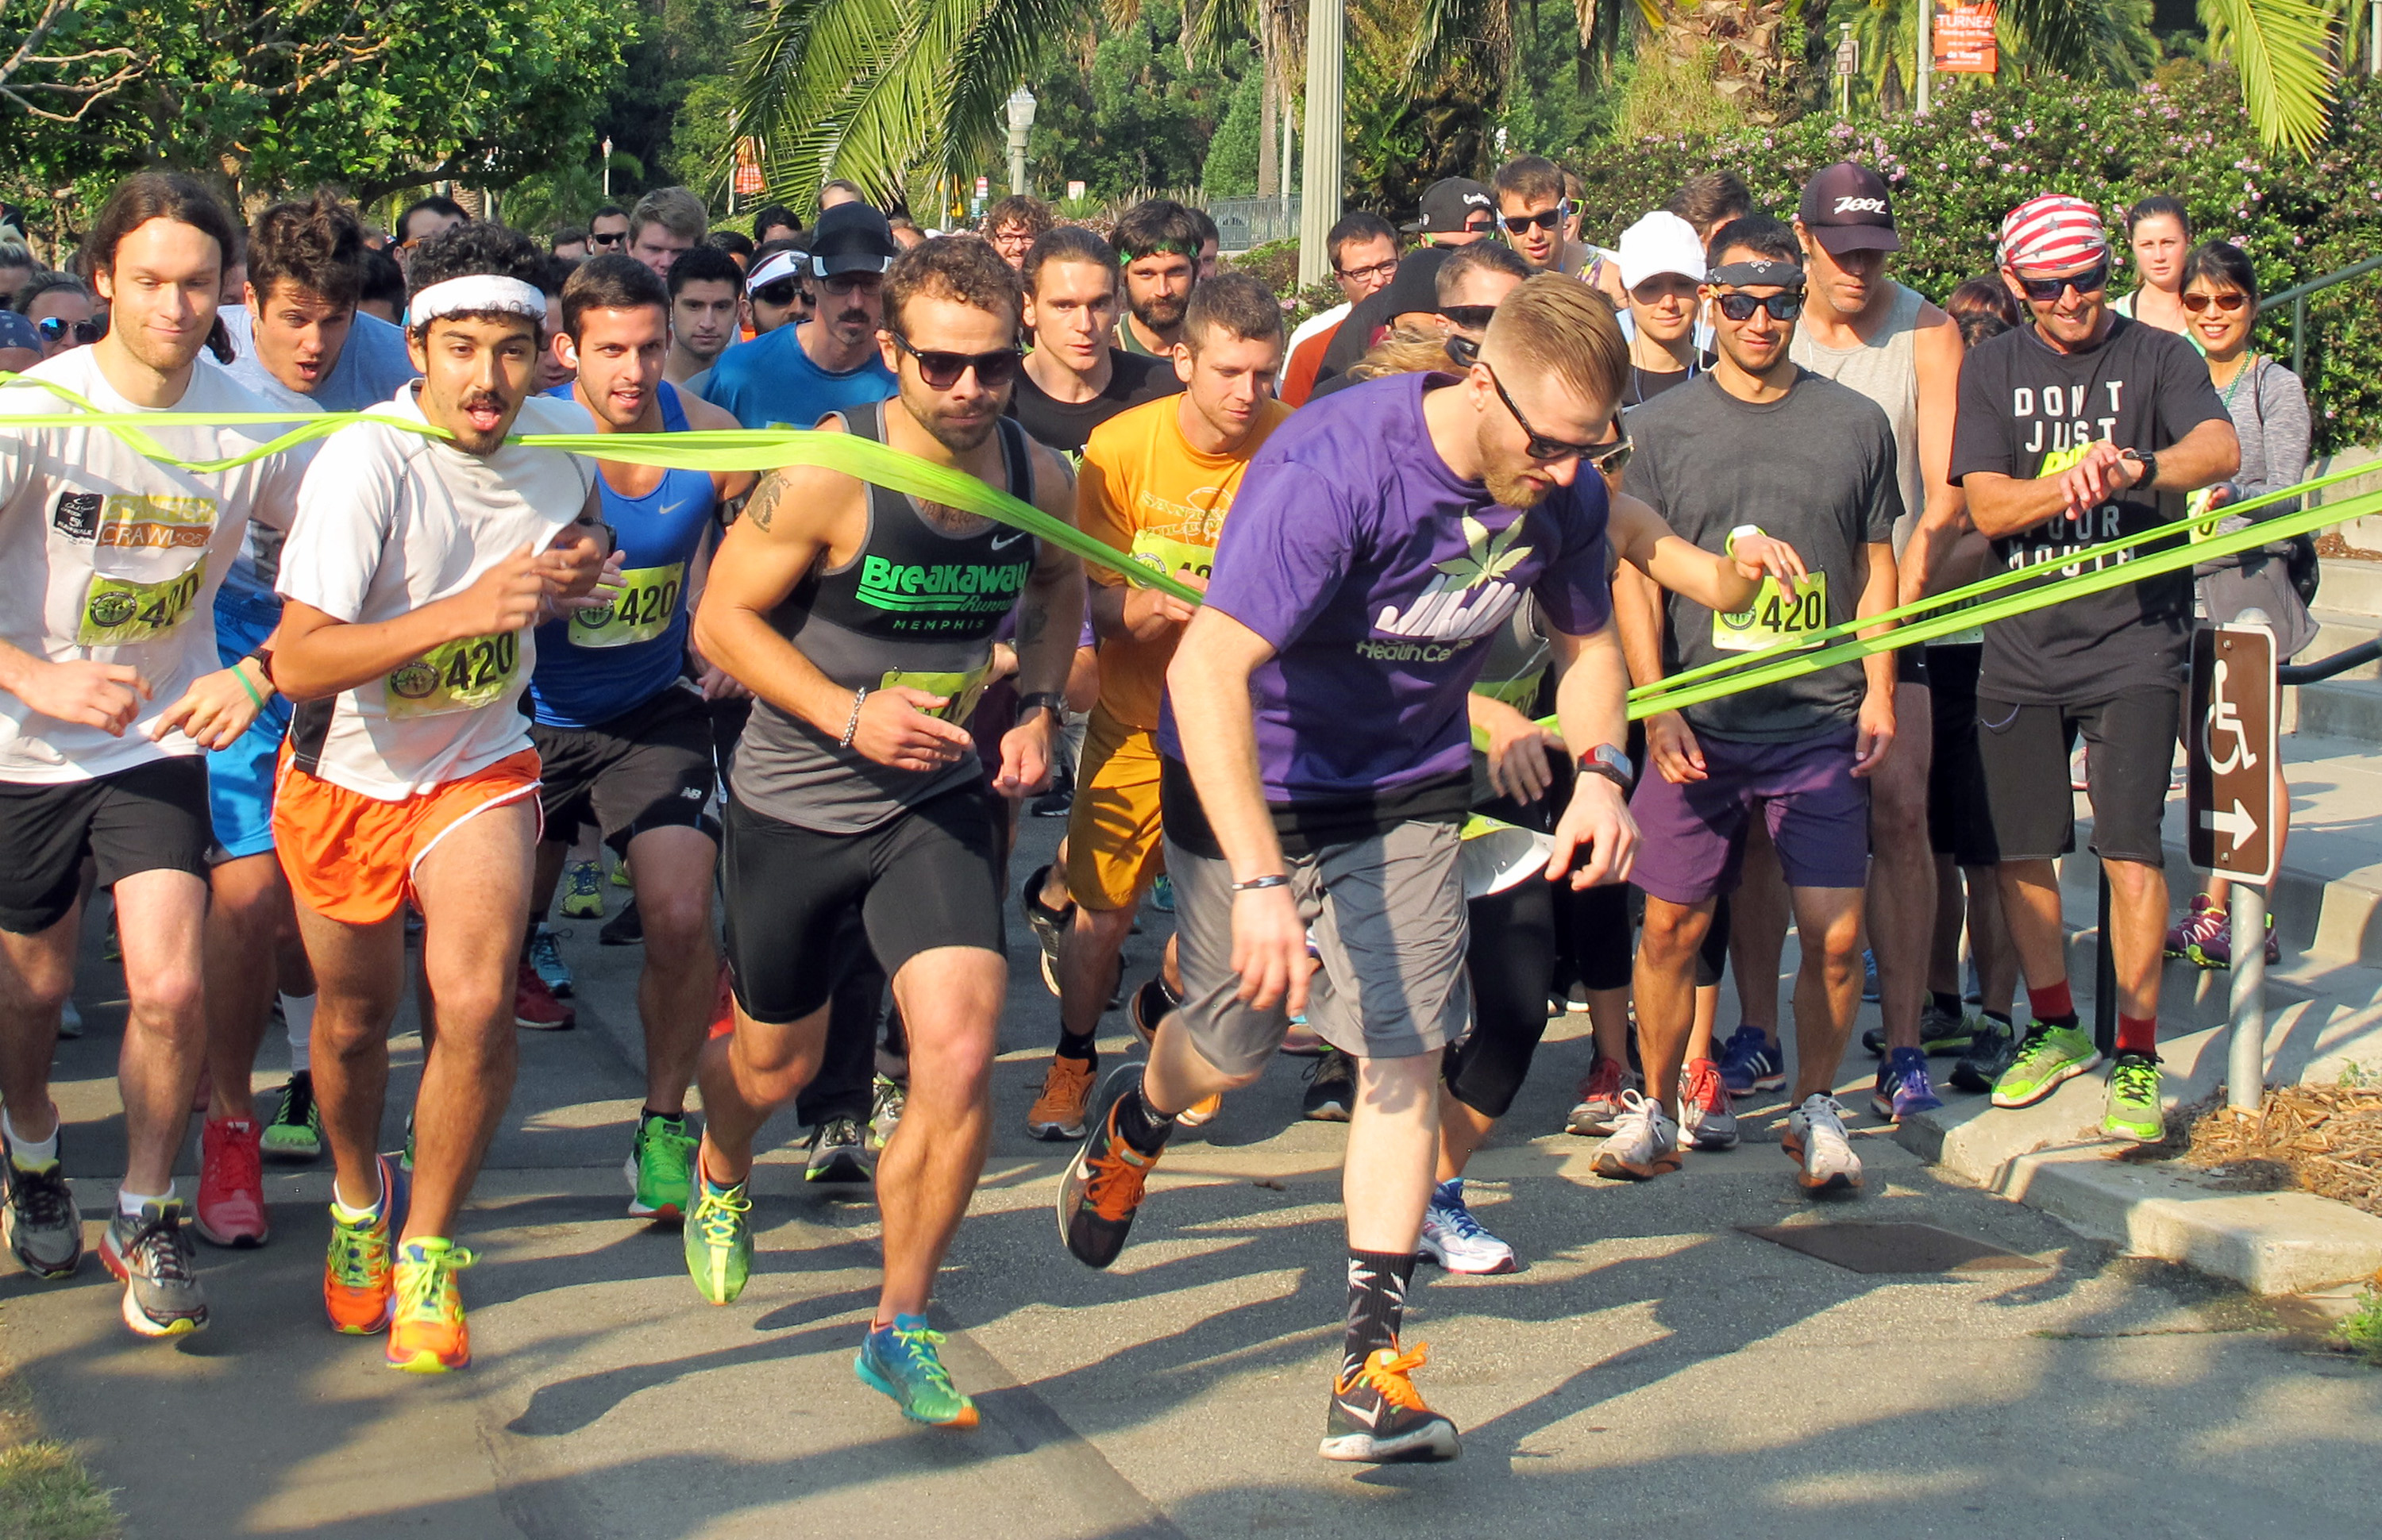 Runners take off in a 4.2-mile run, part of the 420 Games, an effort to stop the stigmatization of cannabis use through athletic events, at Golden Gate Park in San Francisco on Aug. 15, 2015.